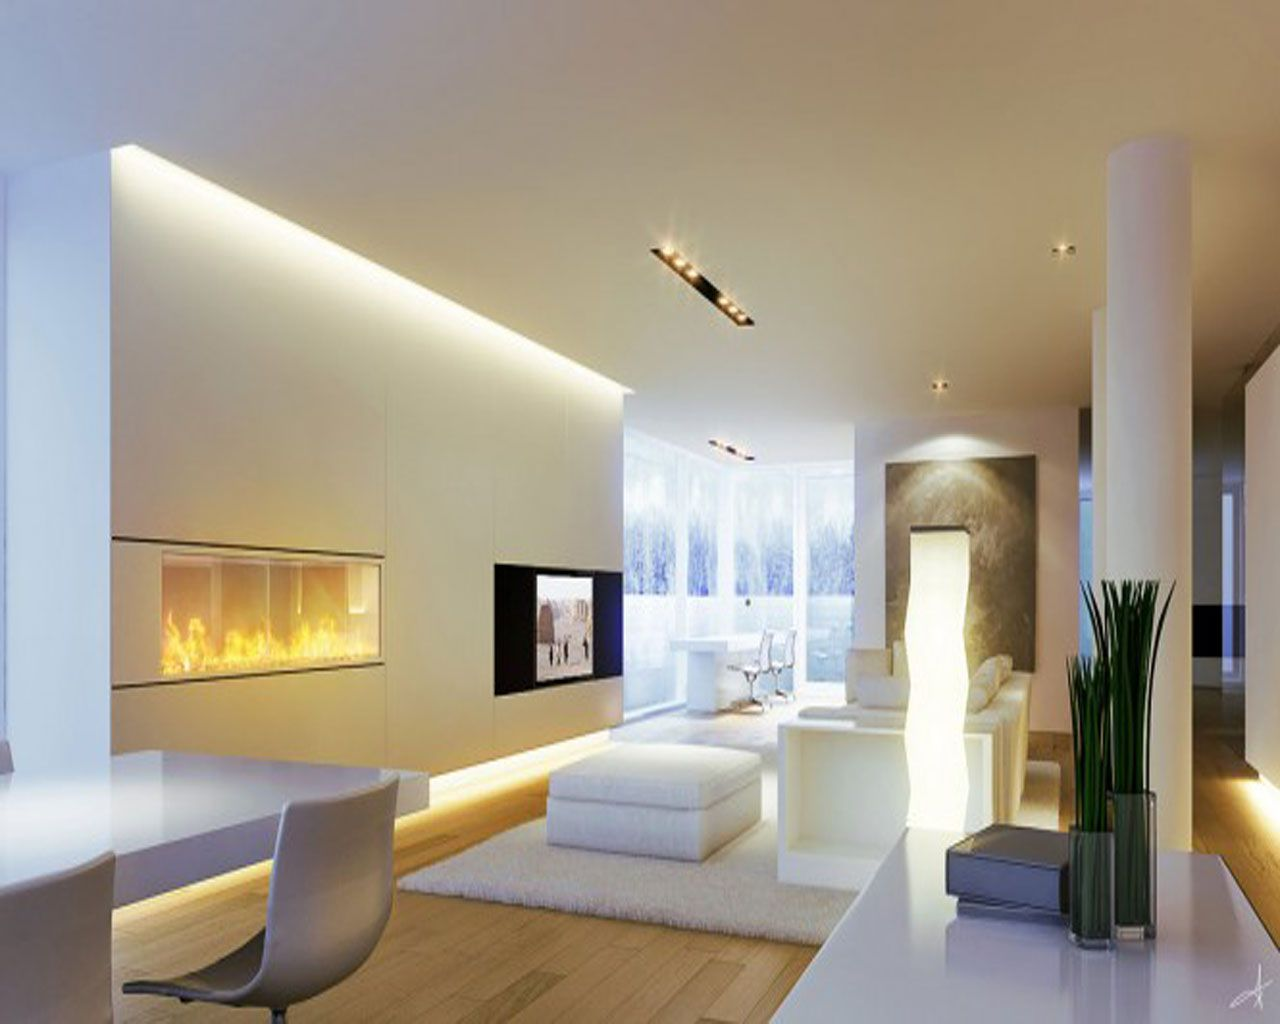 Extraordinary living room lighting design ideas inspiring Wall light living room ideas